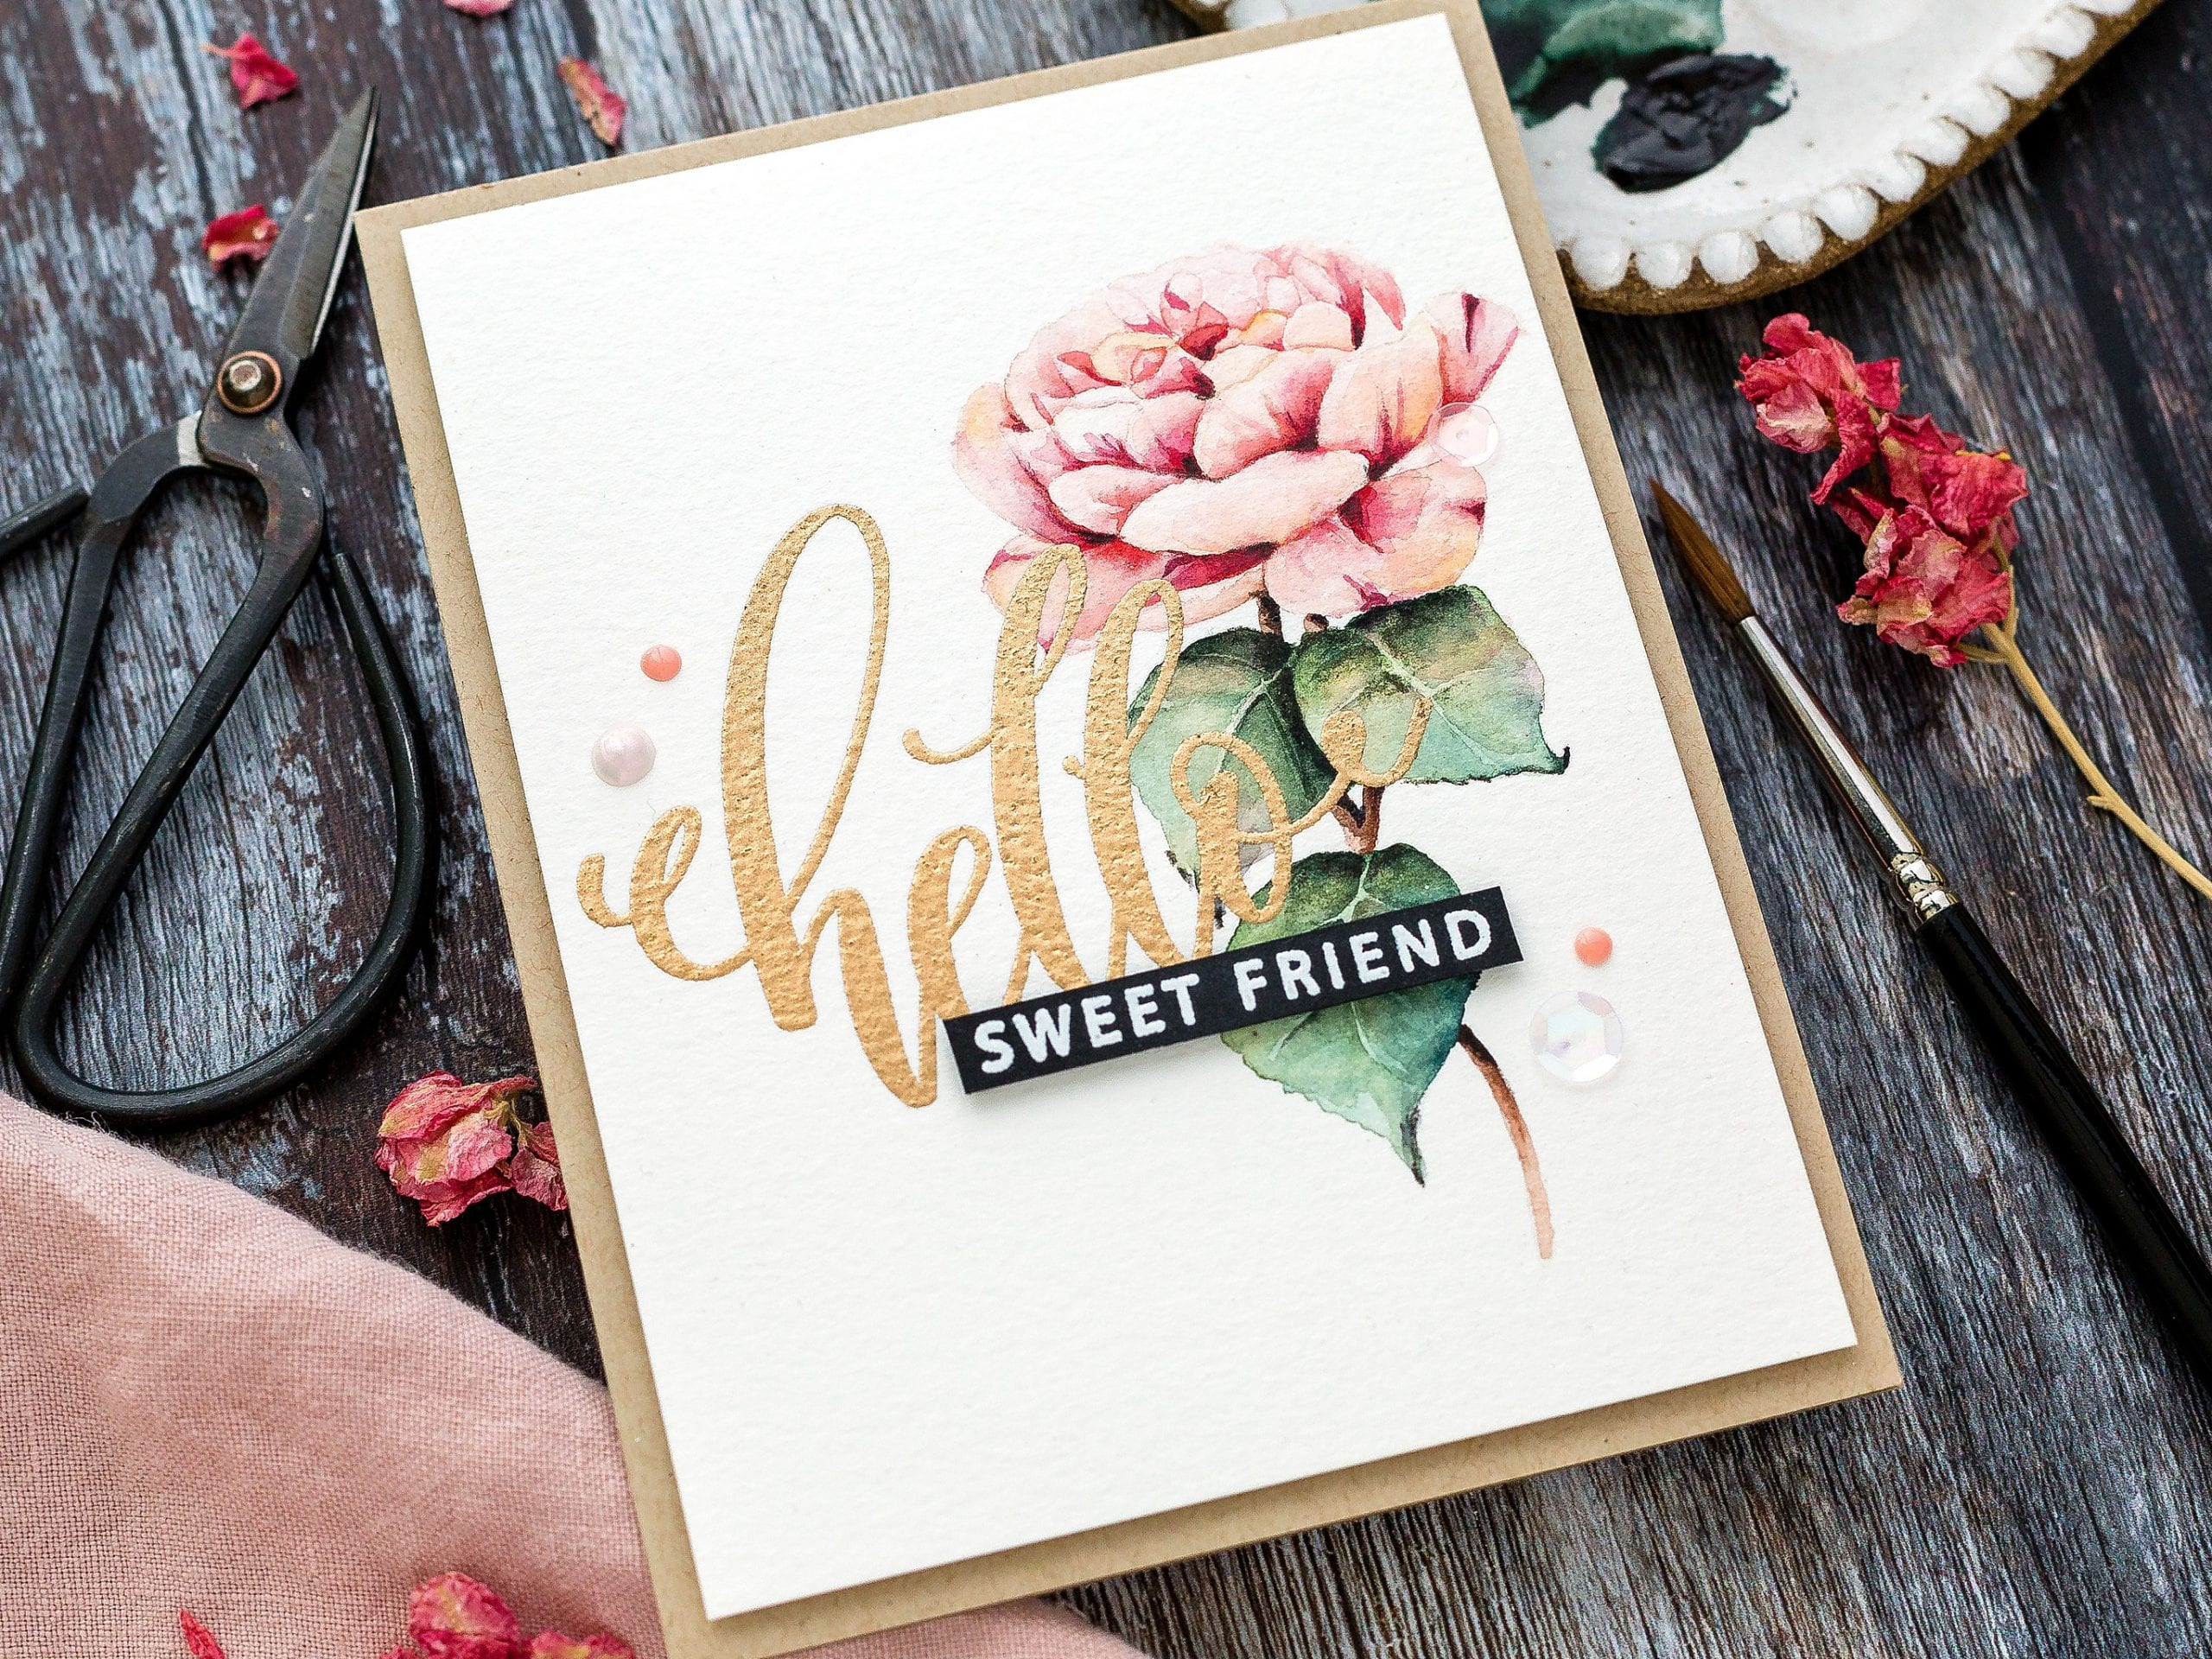 Watercoloured rose handmade card tutorial by Debby Hughes using supplies from Simon Says Stamp #watercolor #rose #homemade